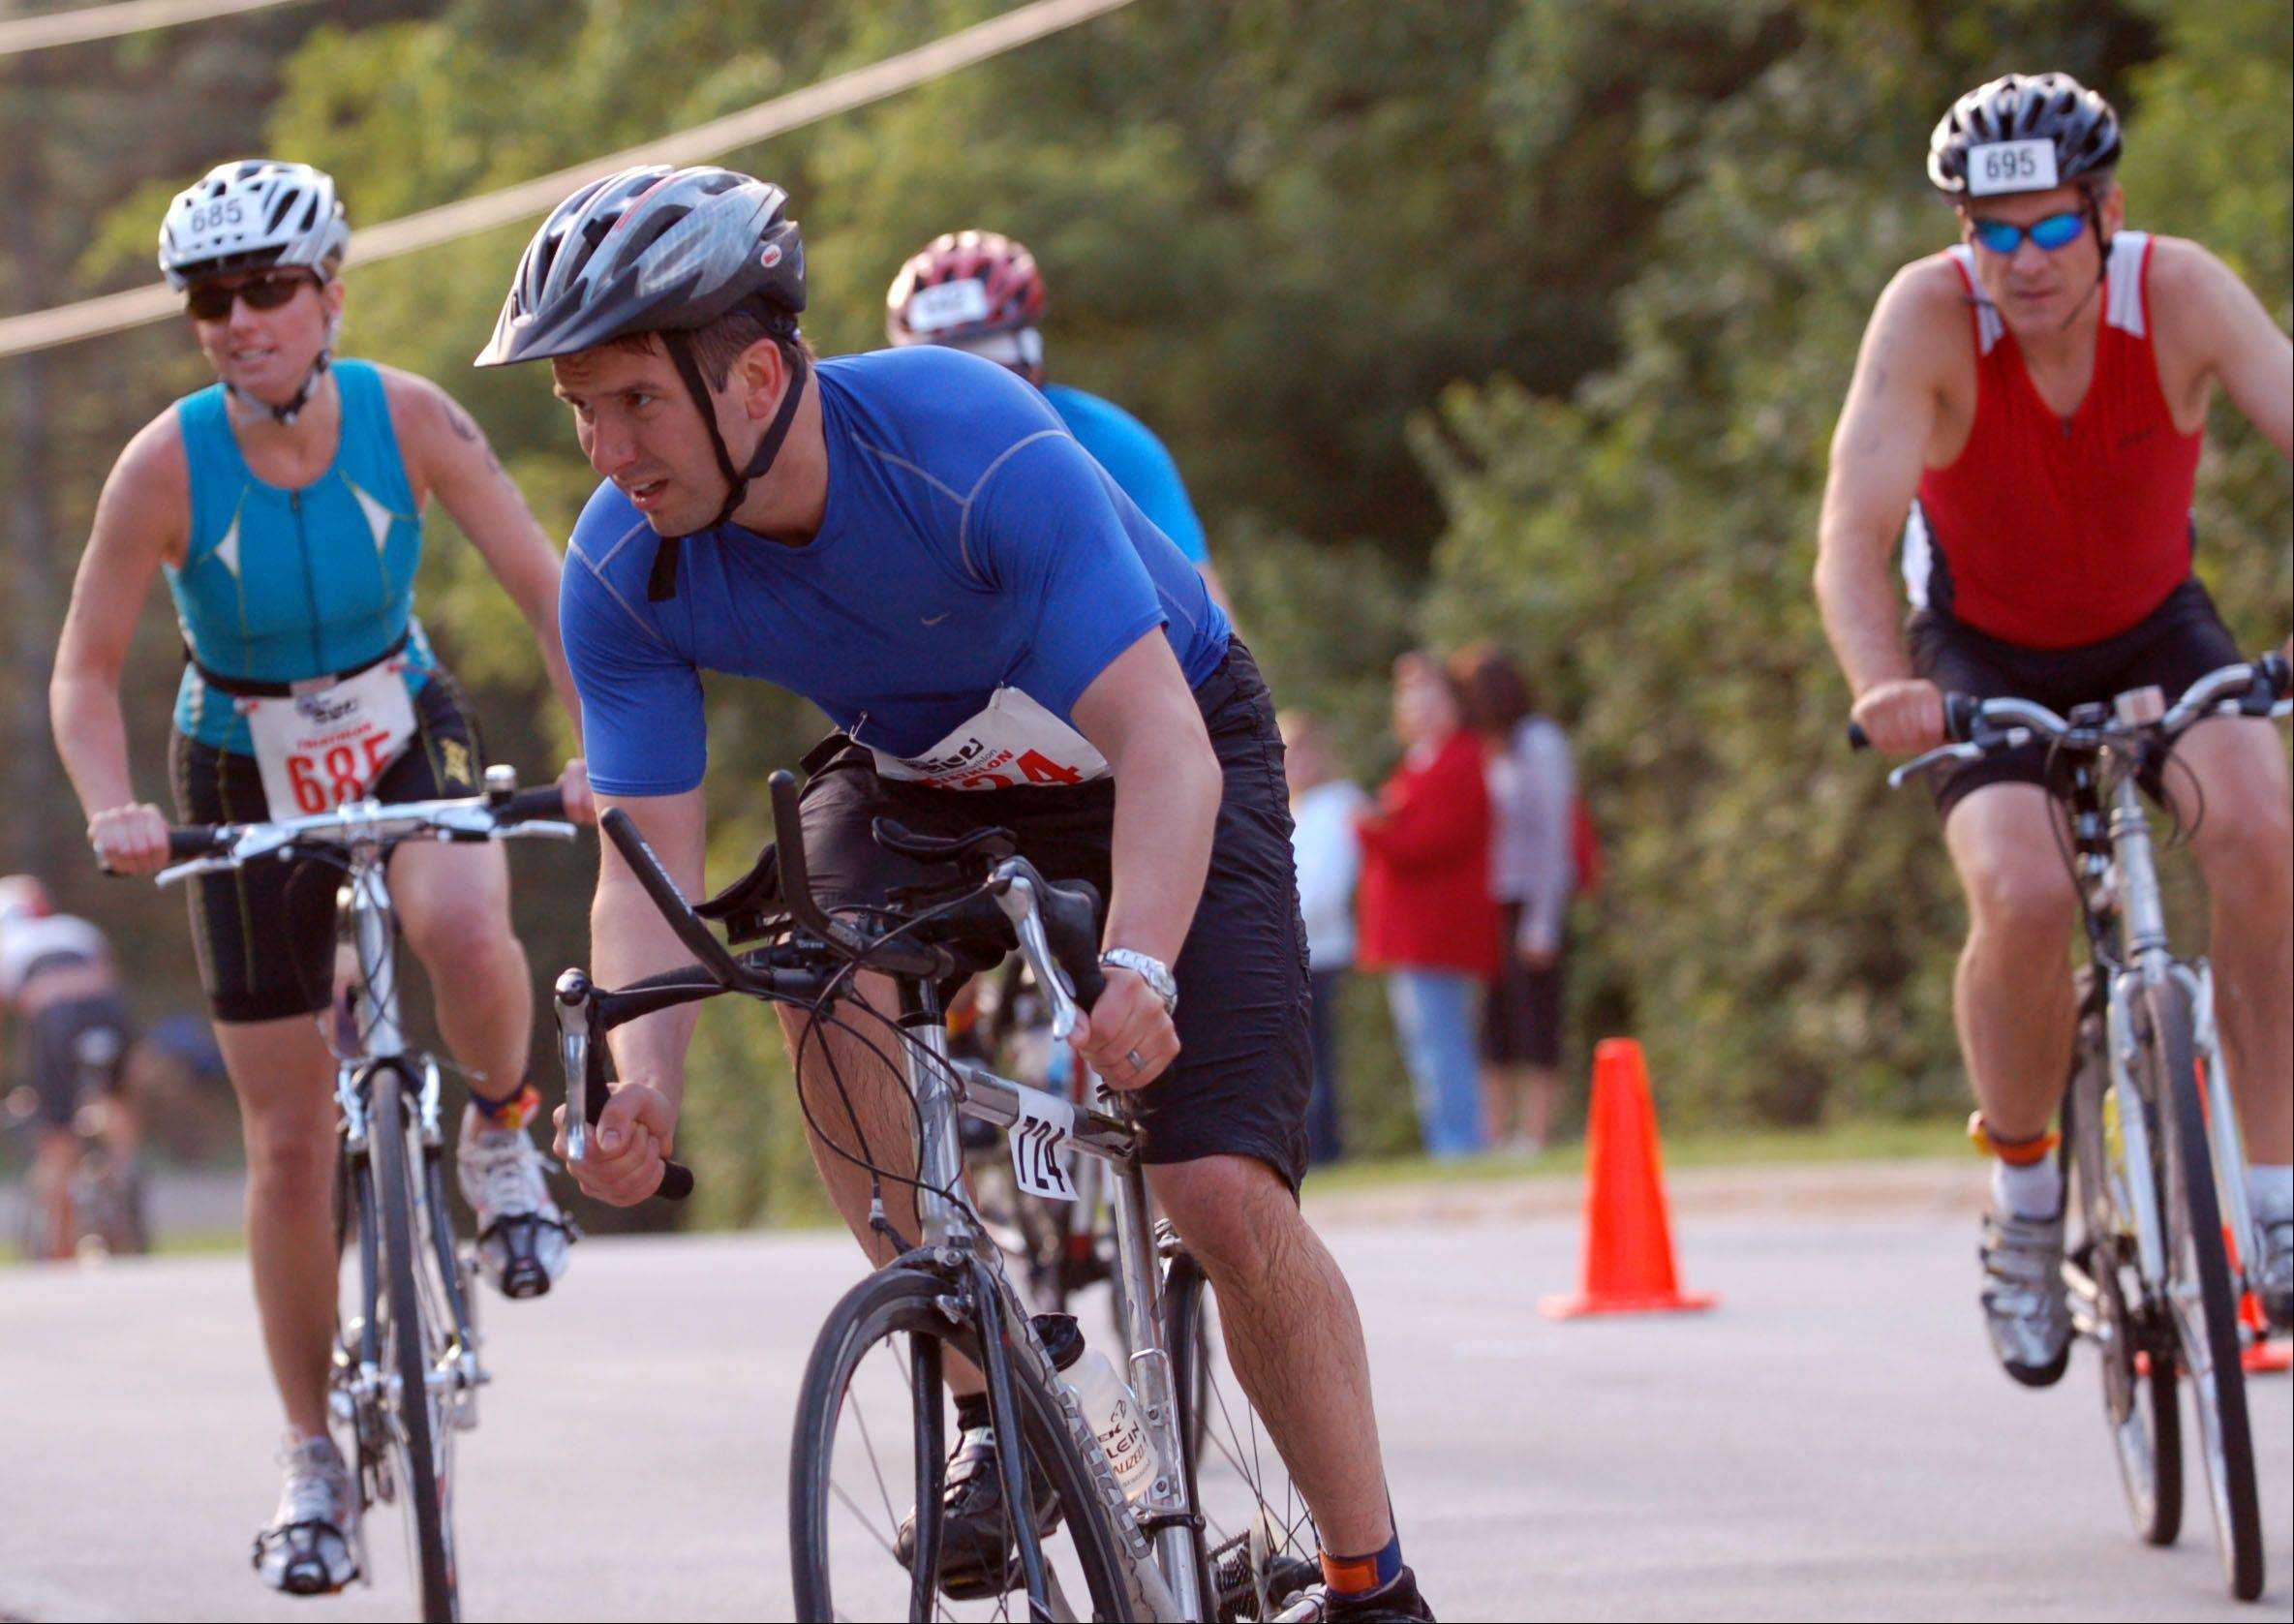 Bicyclists take a sharp curve in Batavia during last year's Batavia Triathlon. The race returns June 10, 2012 with a new title sponsor and new director.